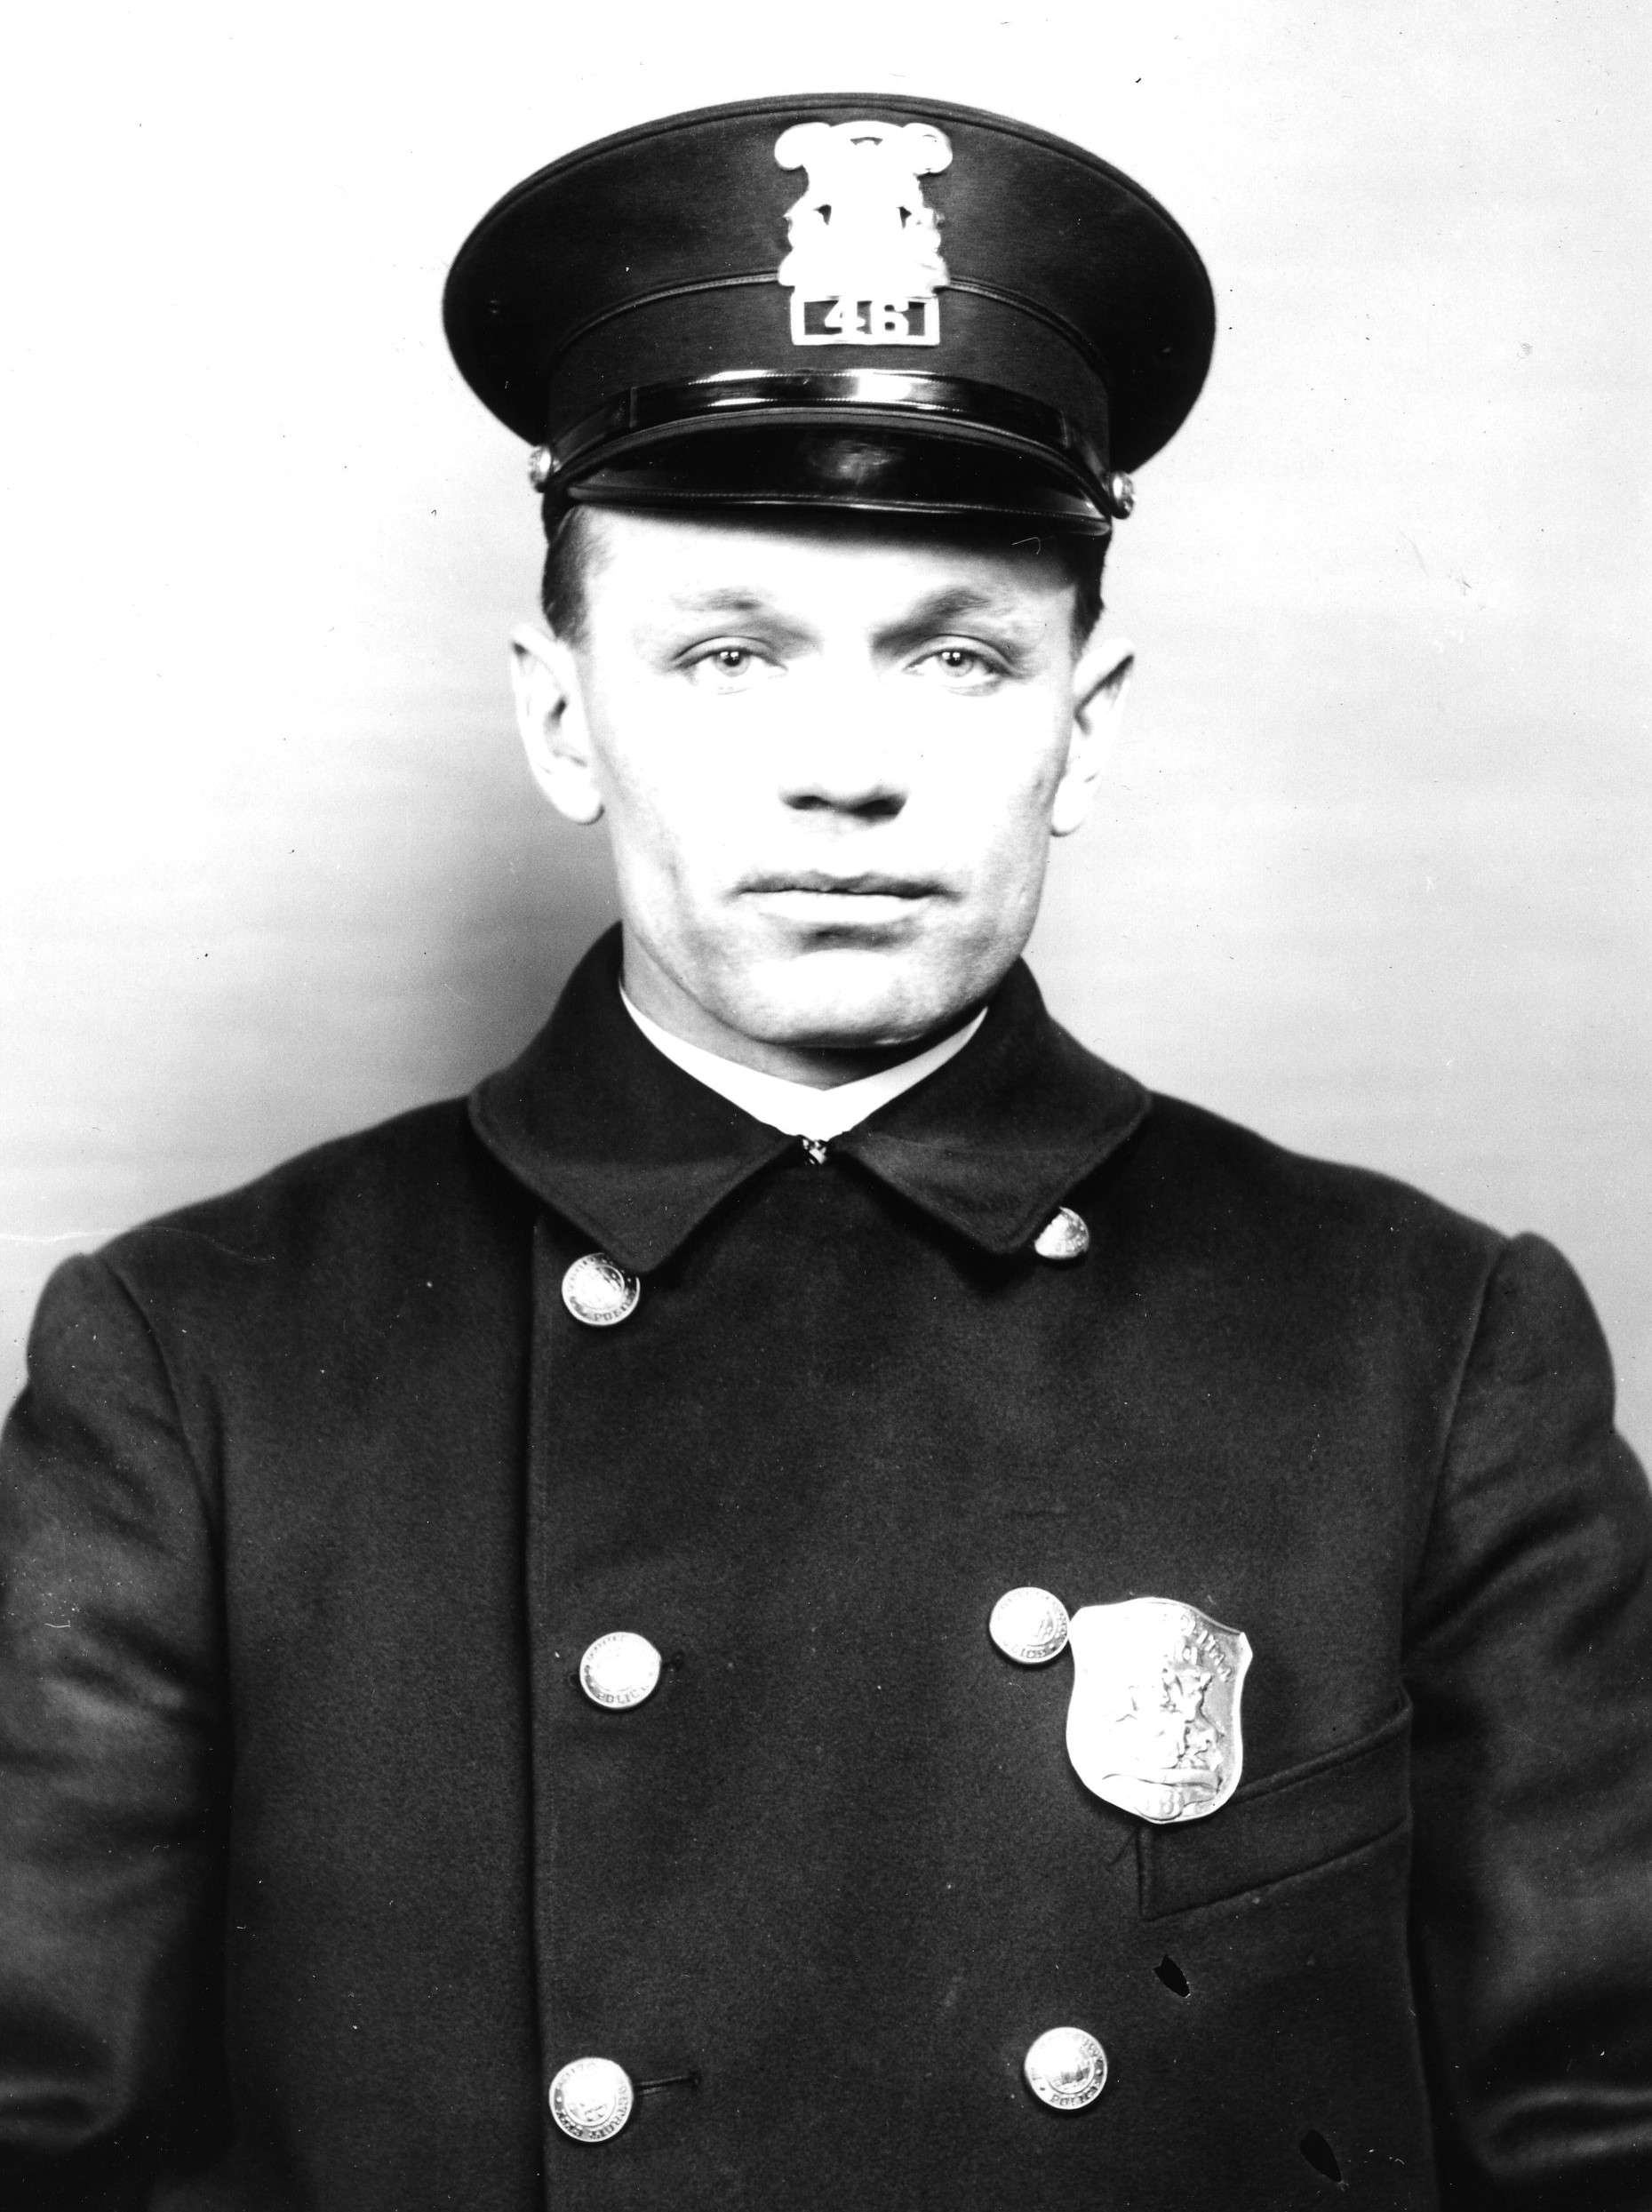 Police Officer Henry G. Angell | Detroit Police Department, Michigan